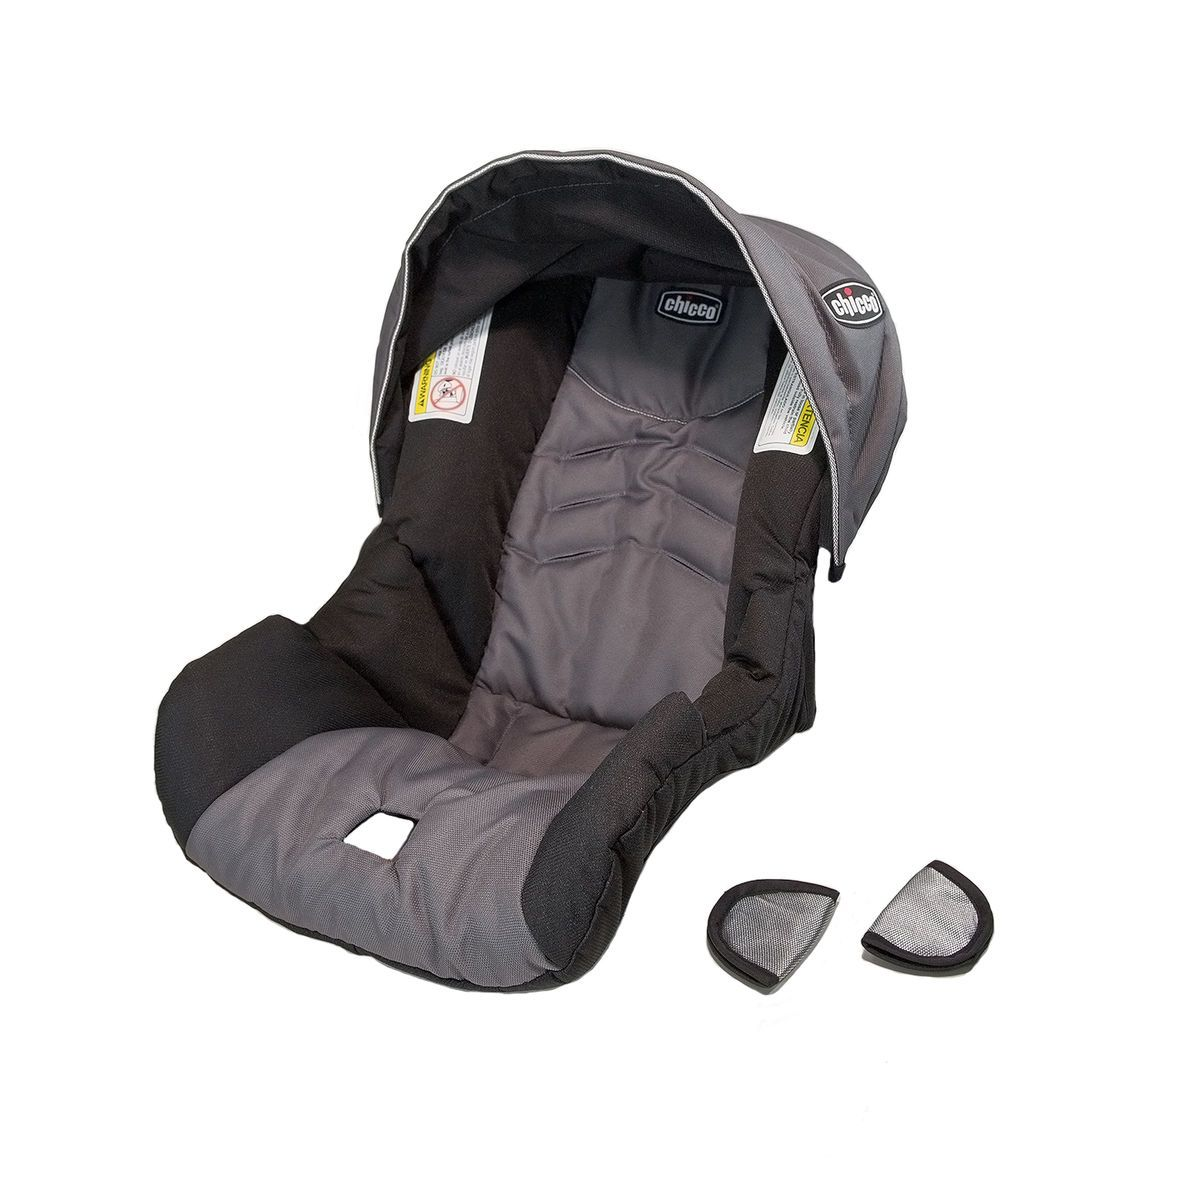 PReplace The Seat Cover Canopy And Shoulder Pads On Your KeyFit 30 Infant Car Includesbr P Div Classto Hide Ul LiSeat Li